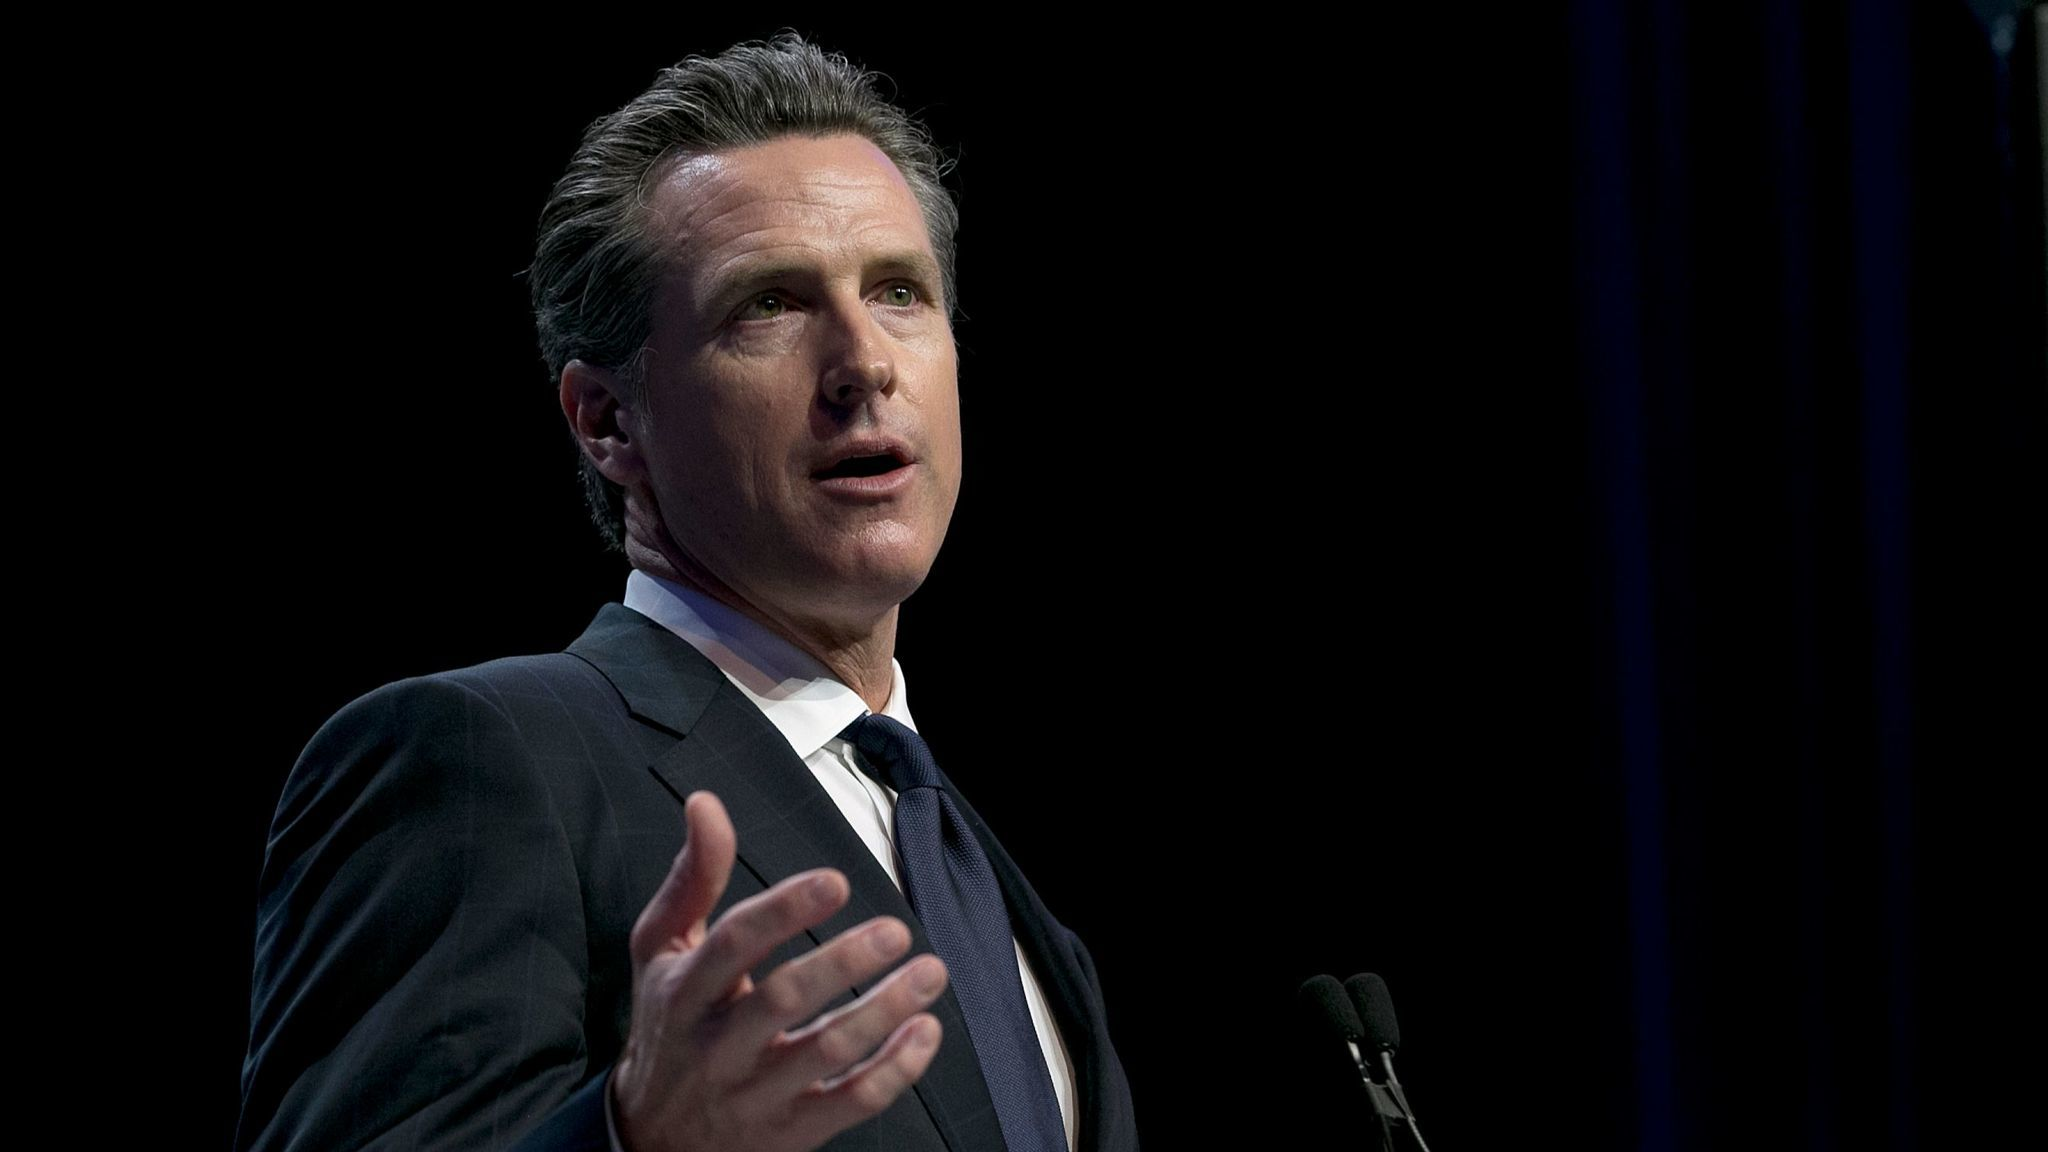 Lt. Gov. Gavin Newsom, a candidate for governor, has used his leadership of the State Lands Commission to promote his opposition to offshore oil drilling.